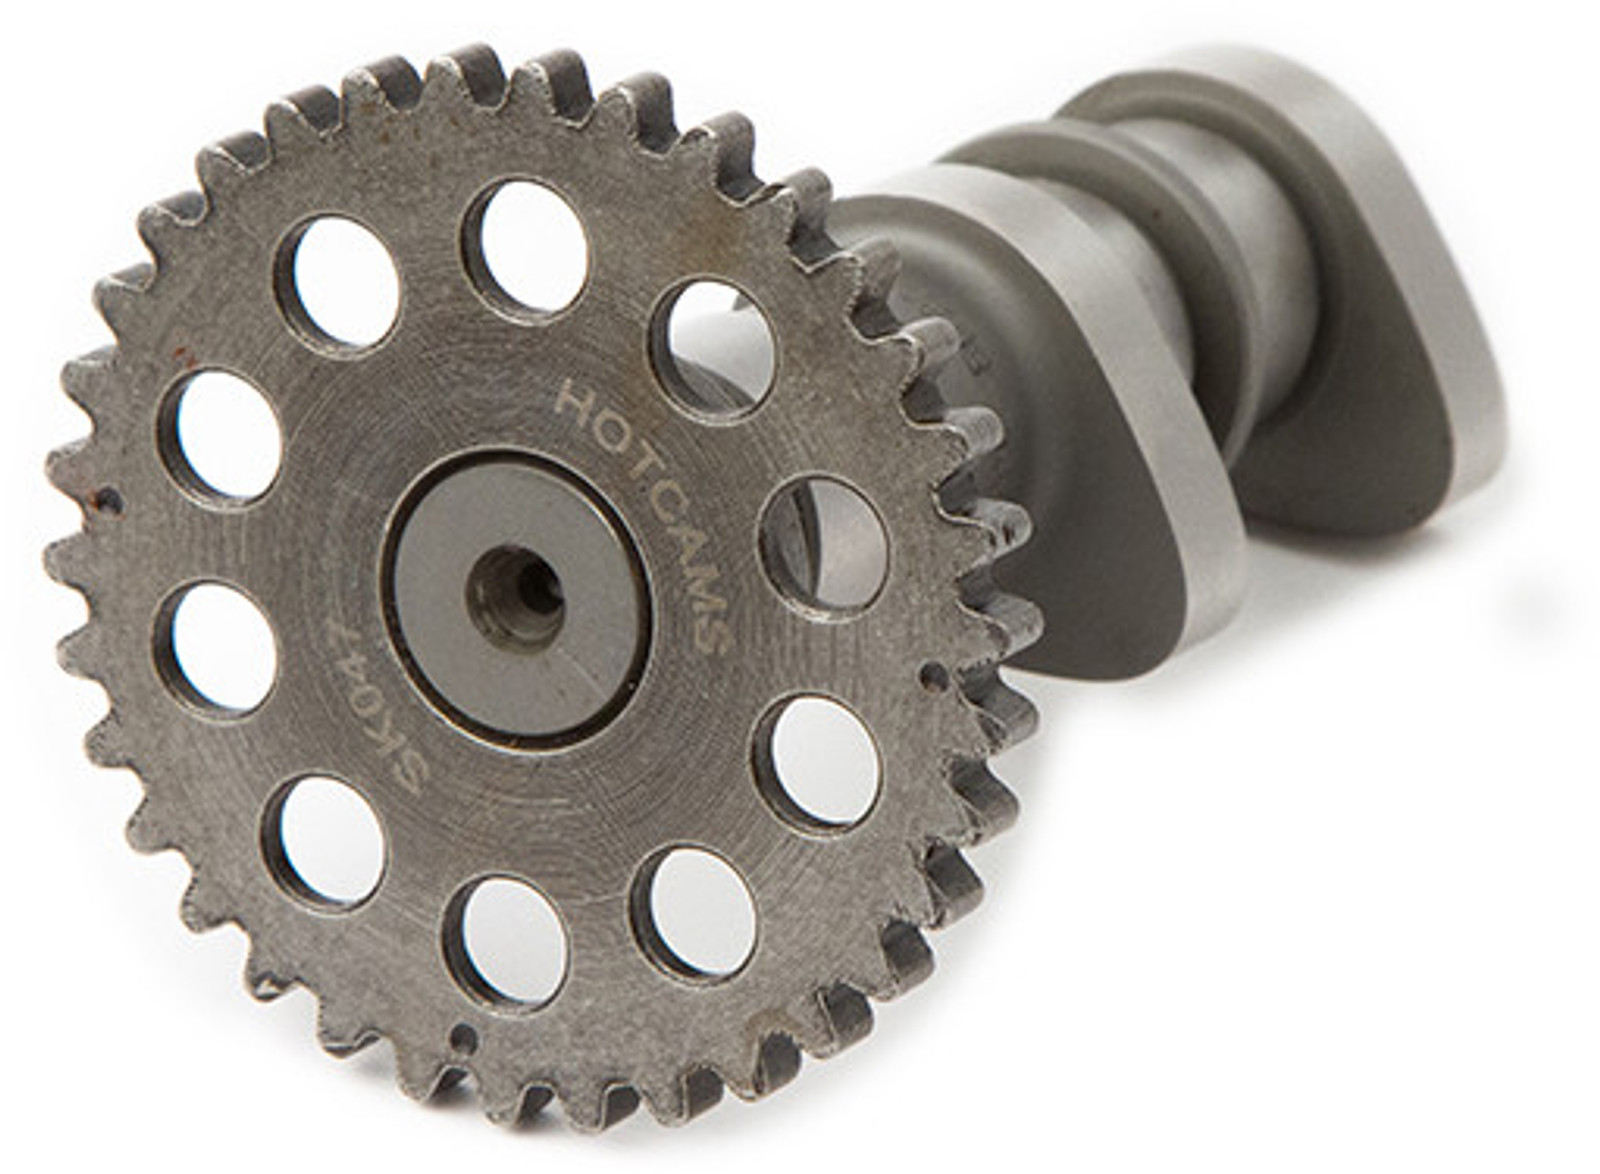 Stage 1 Intake Camshaft~ 2249-1IN Hot Cams